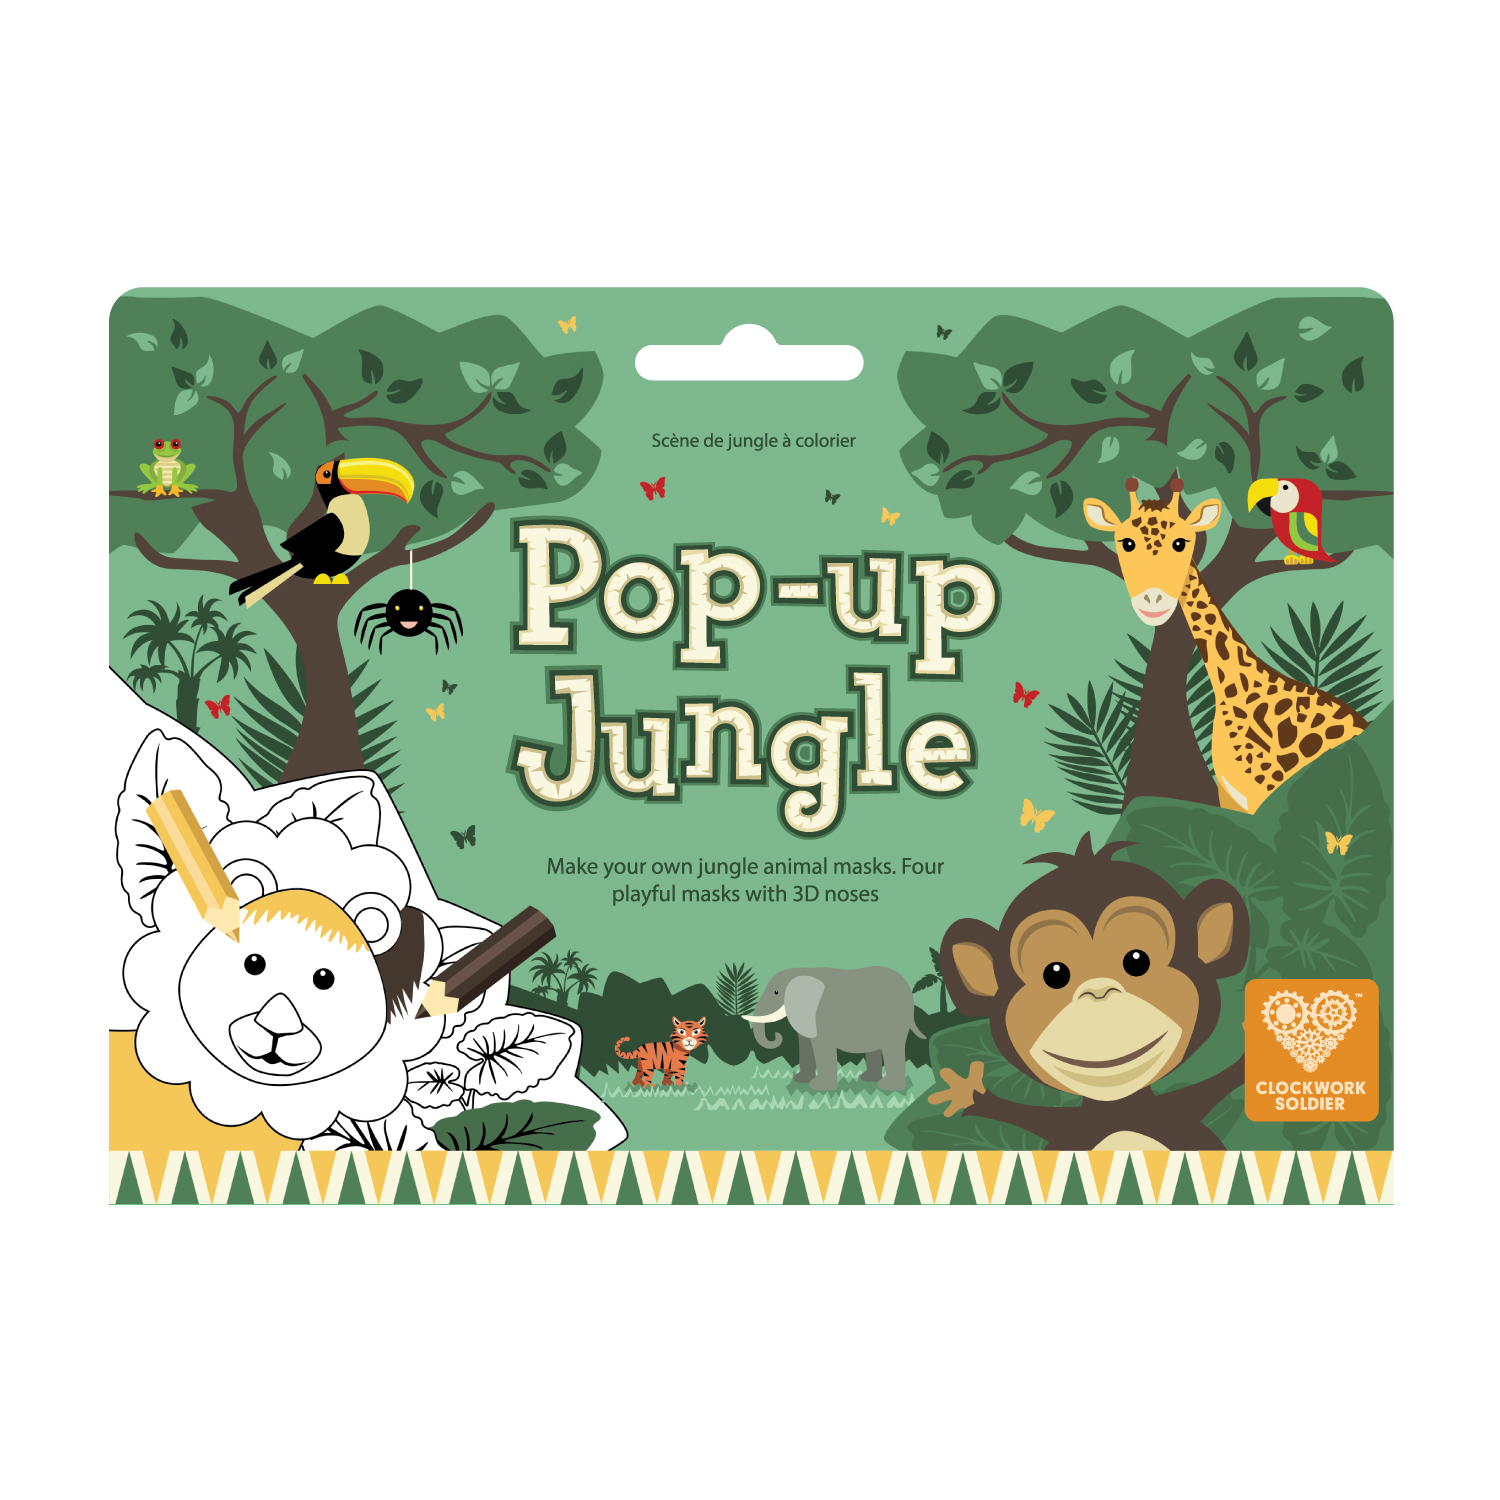 Popup-Jungle-Pack-Front.jpg